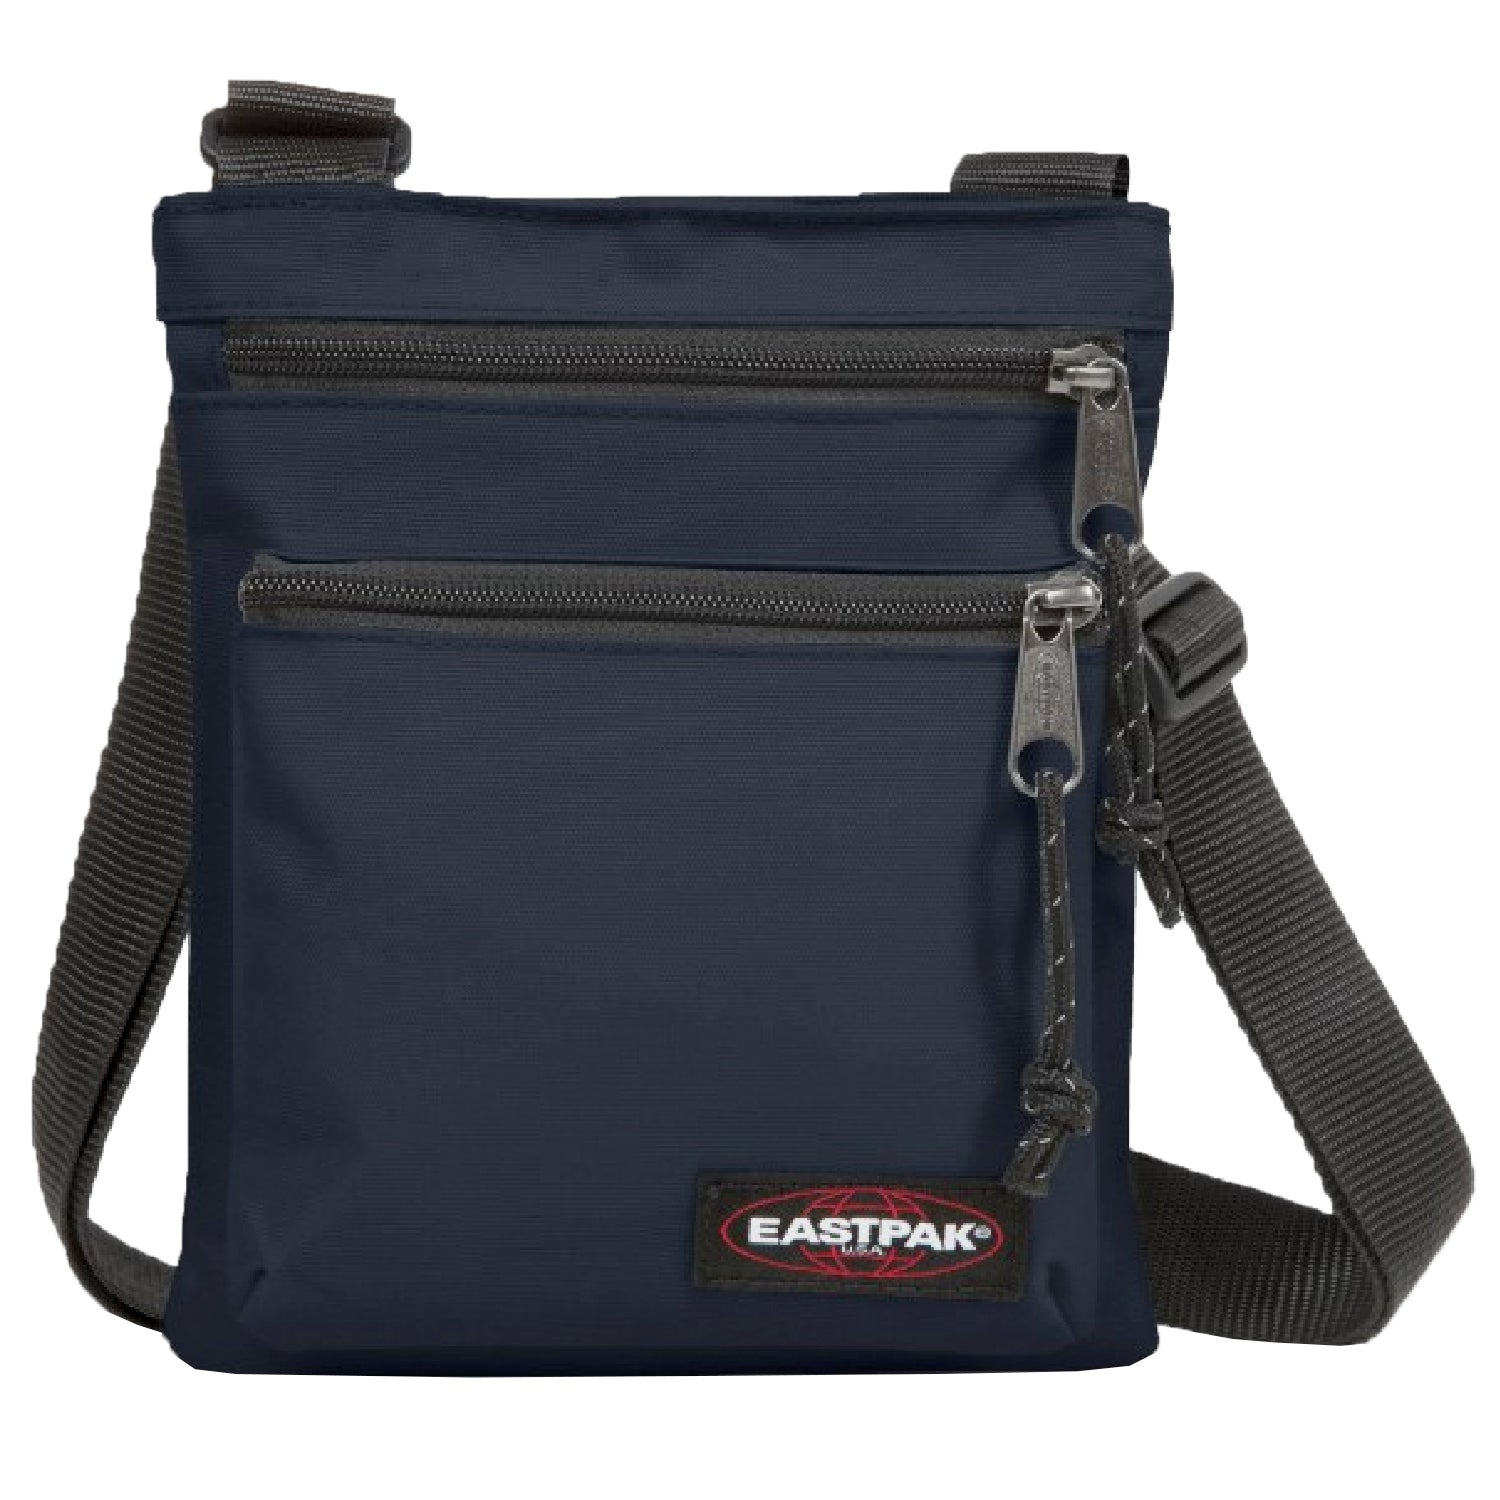 6f85ab1564 Eastpak Rusher Unisex Bag Messenger - Cloud Navy One Size